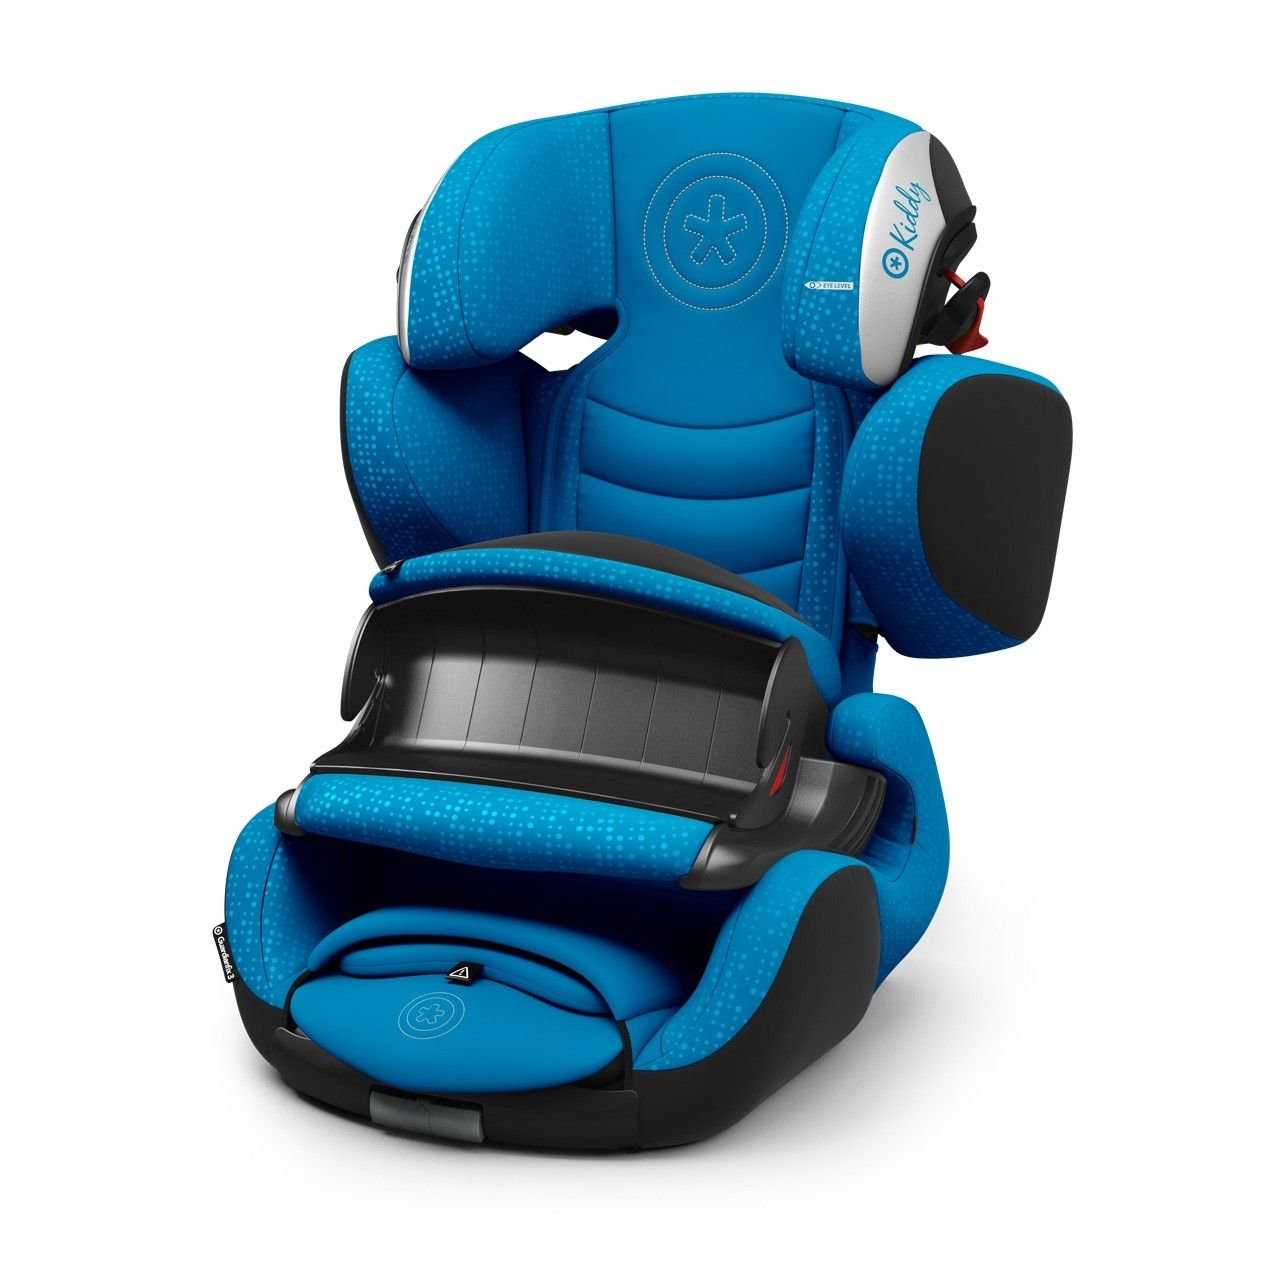 Kindersitz Kiddy Discovery Pro Kiddy Guardianfix 3 Car Seat Group 1 2 3 Summer Blue In